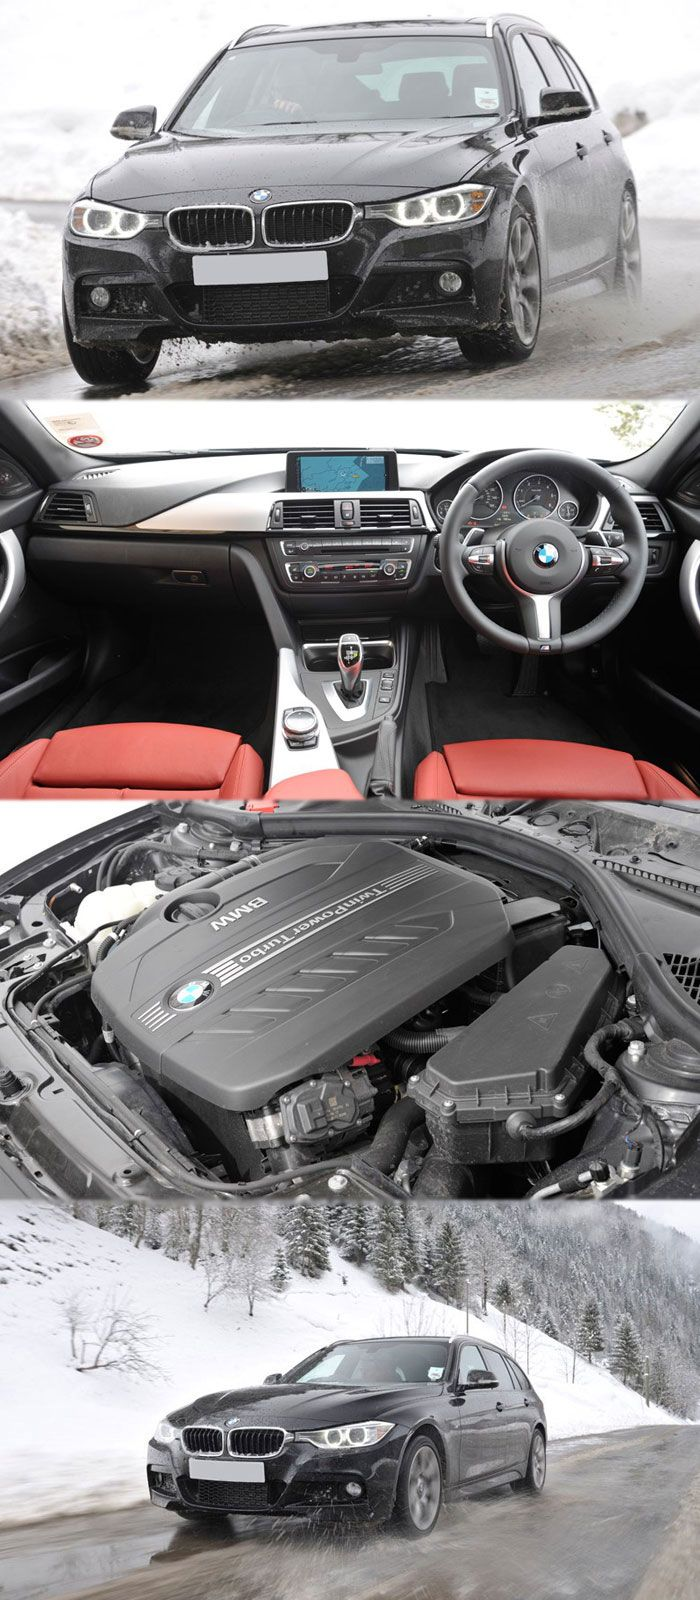 BMW 330d Known for Efficient and Powerful Engine For more details at: https://www.enginefitters.co.uk/model/bmw/3series/330d/engines